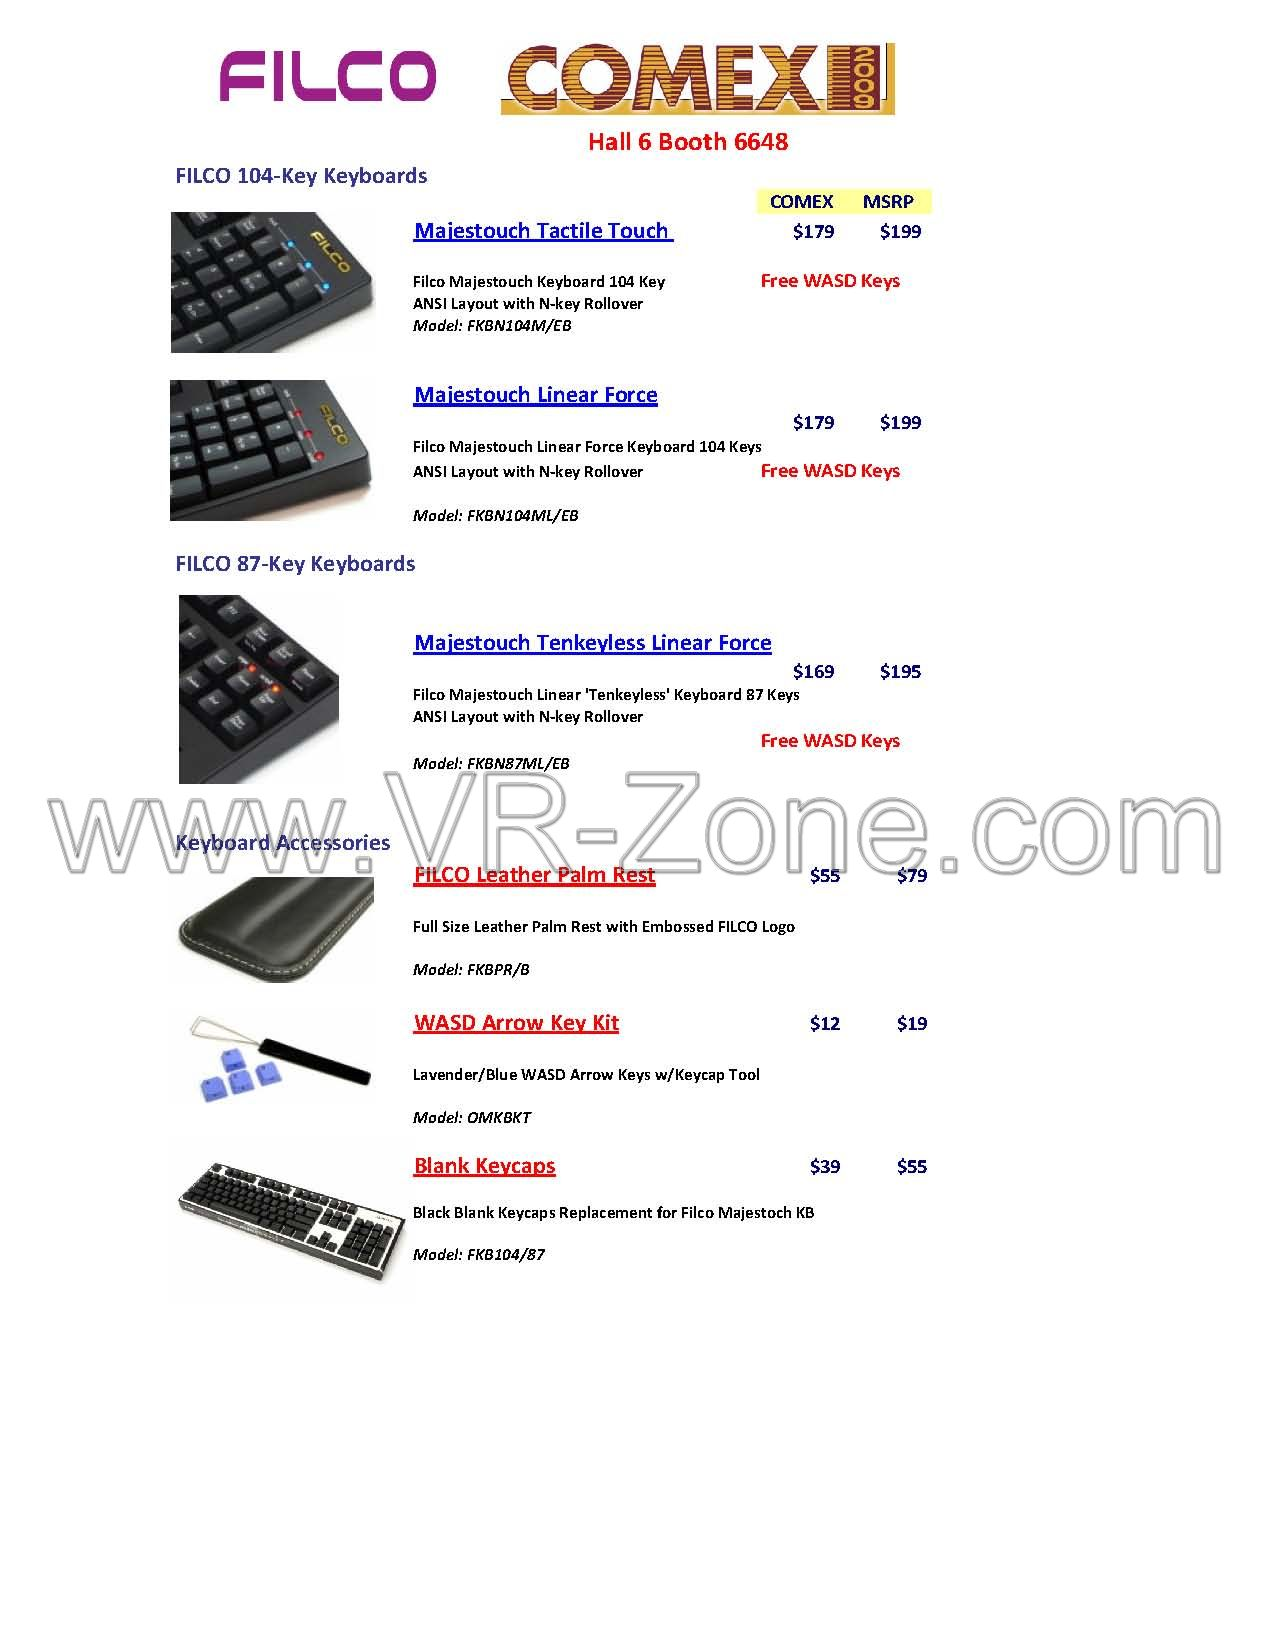 Comex 2009 price list image brochure of Filco Keyboards Accessories Majestouch Force